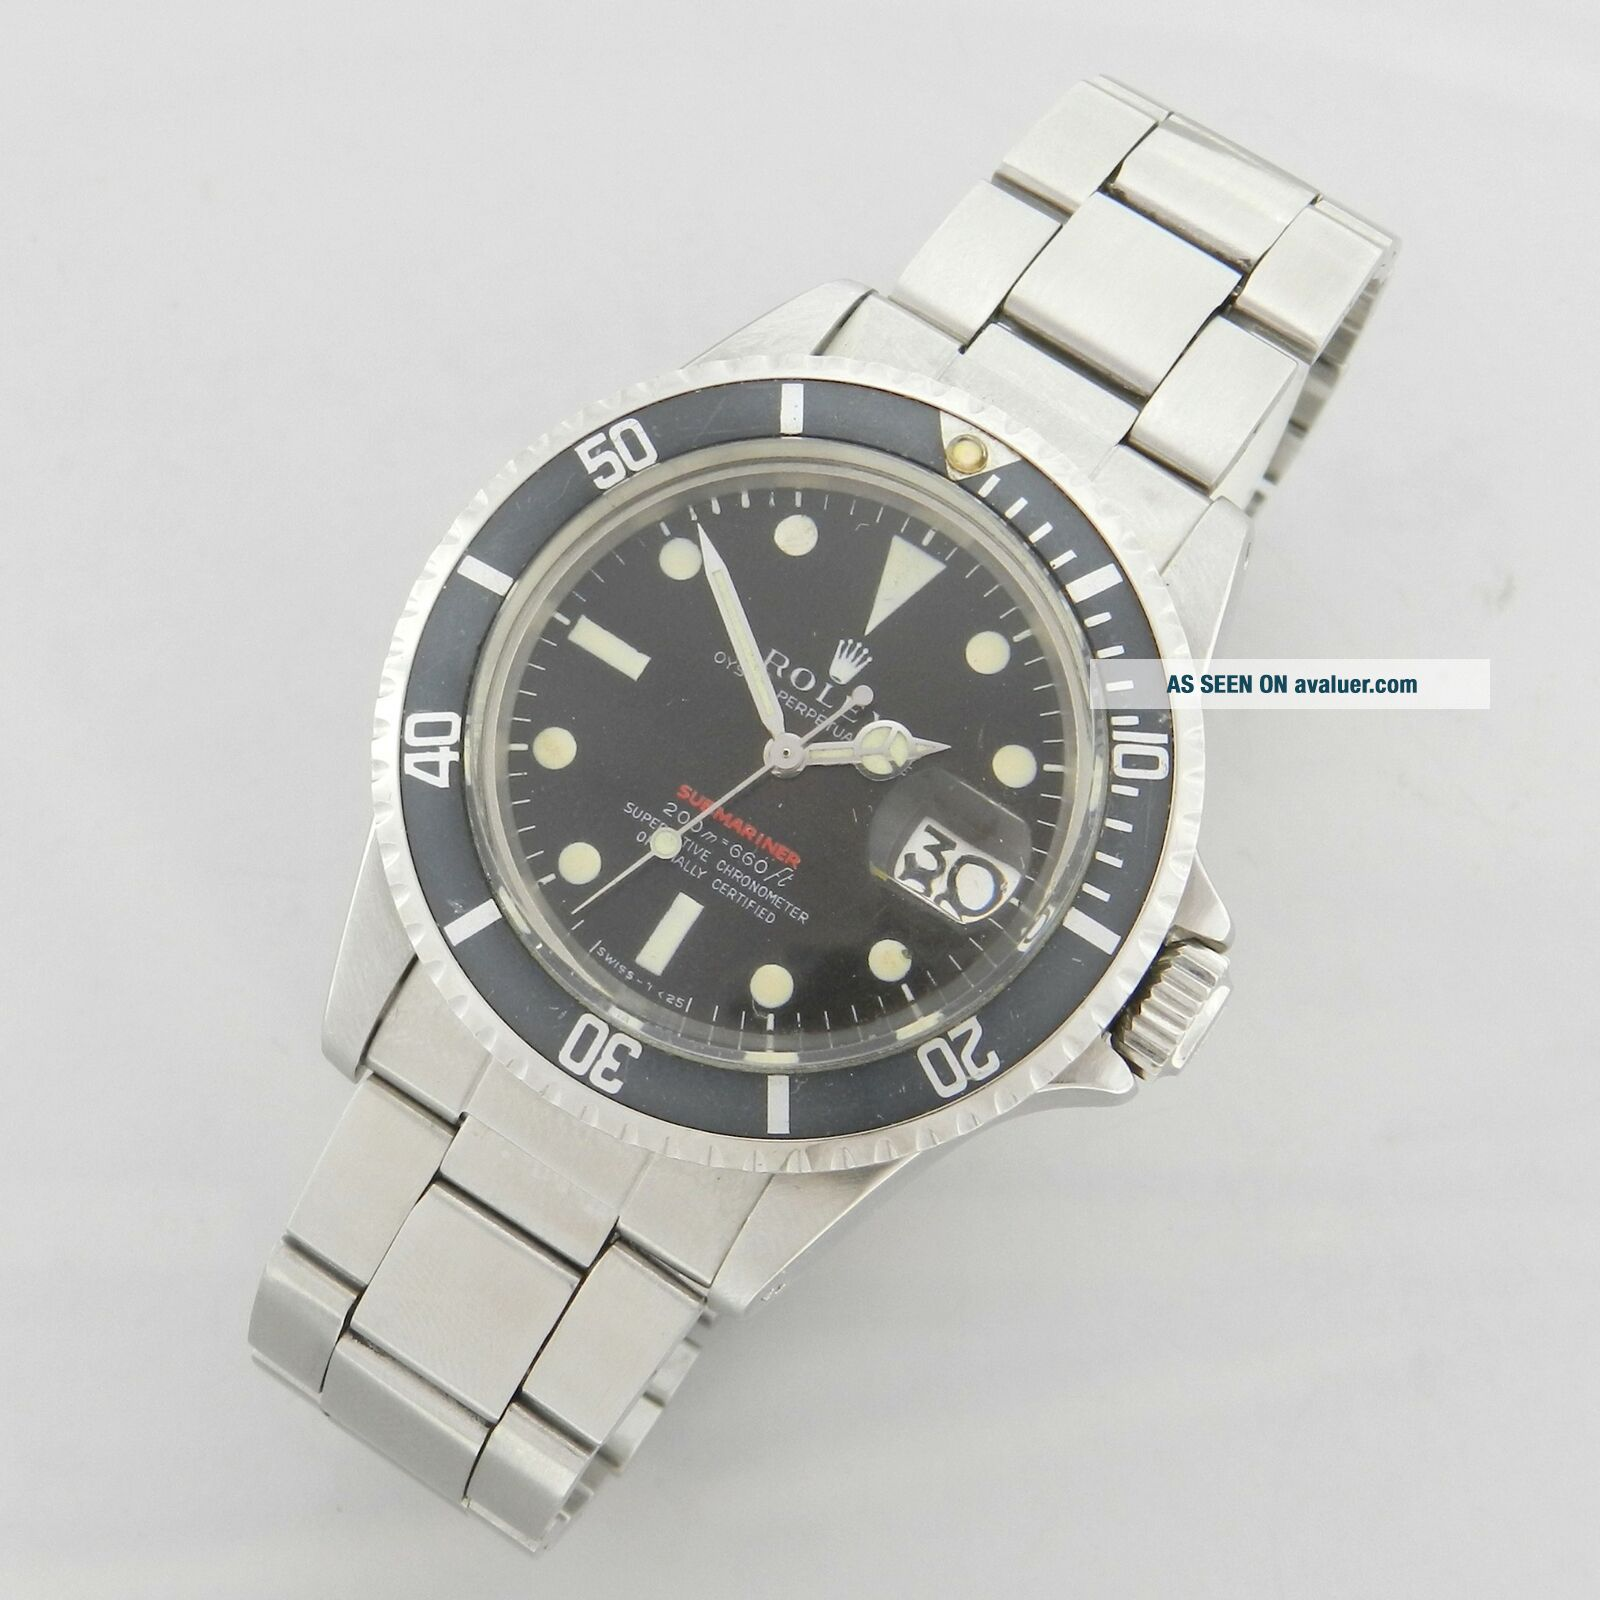 ROLEX RED SUBMARINER DATE 1680 VINTAGE WATCH 100 TROPICAL DIAL 1969